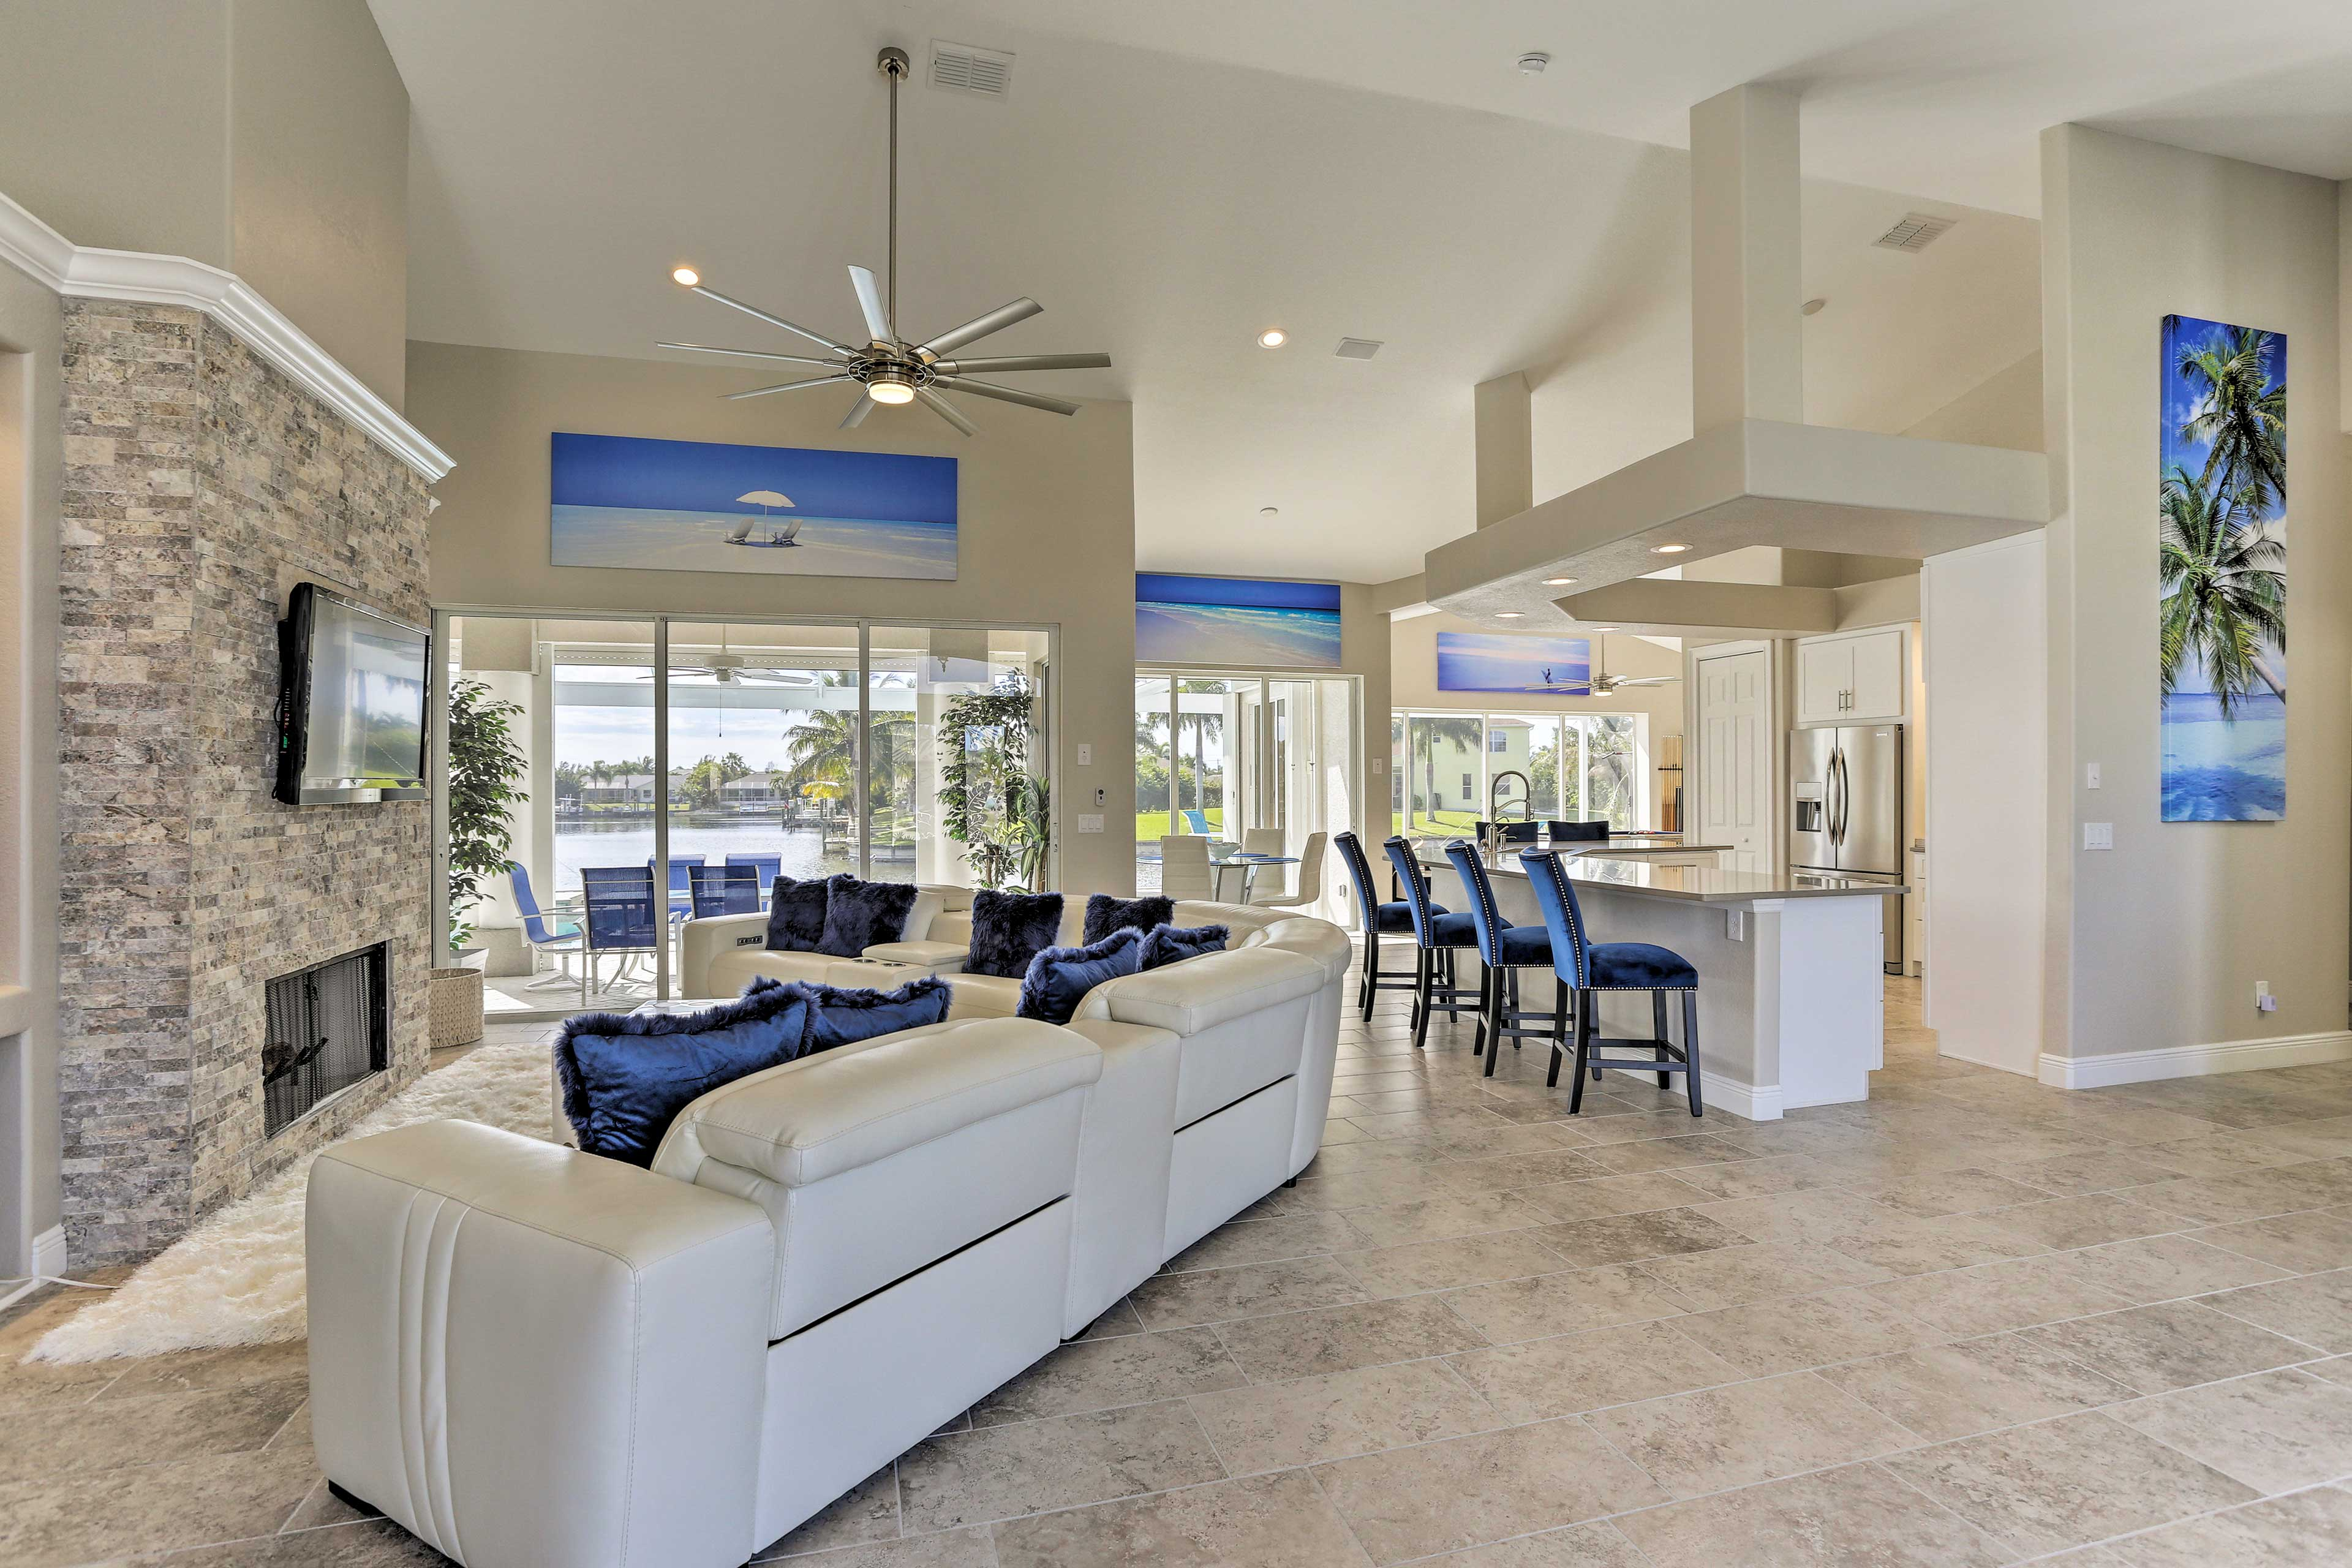 Book this pristine Cape Coral home for your next seaside soirée!